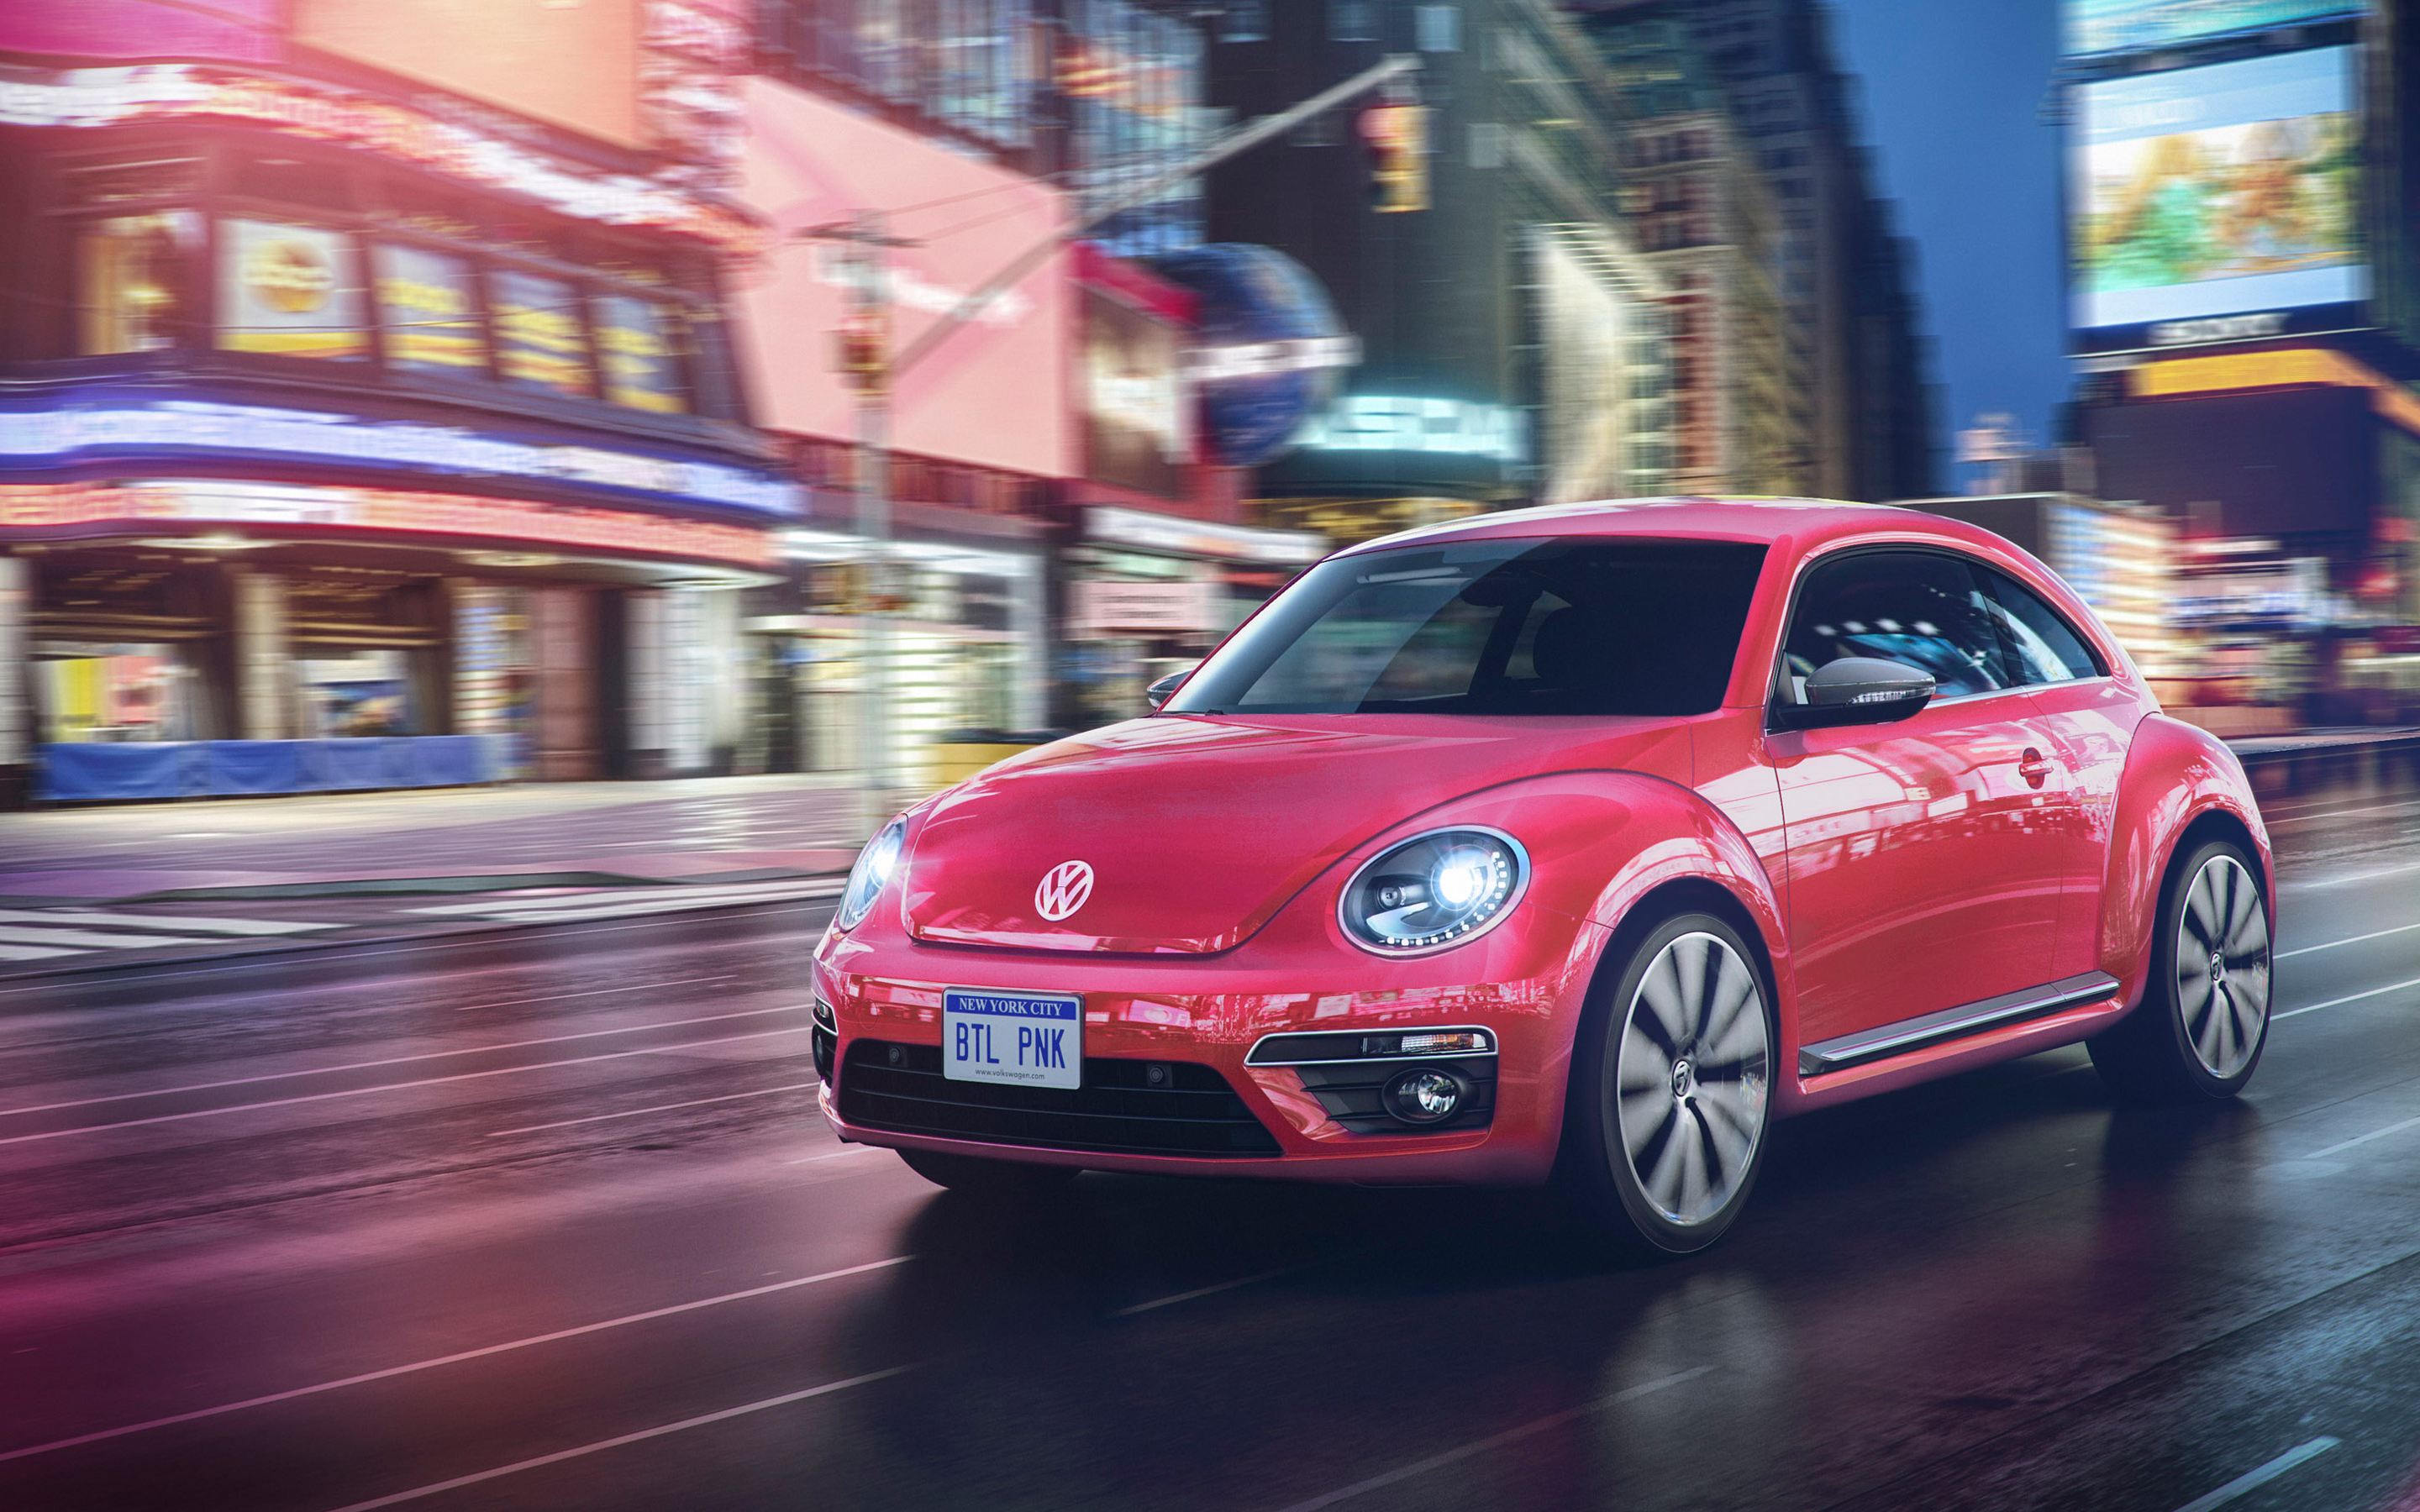 2017 Volkswagen Pink Beetle Limited Edition Wallpaper | HD ...